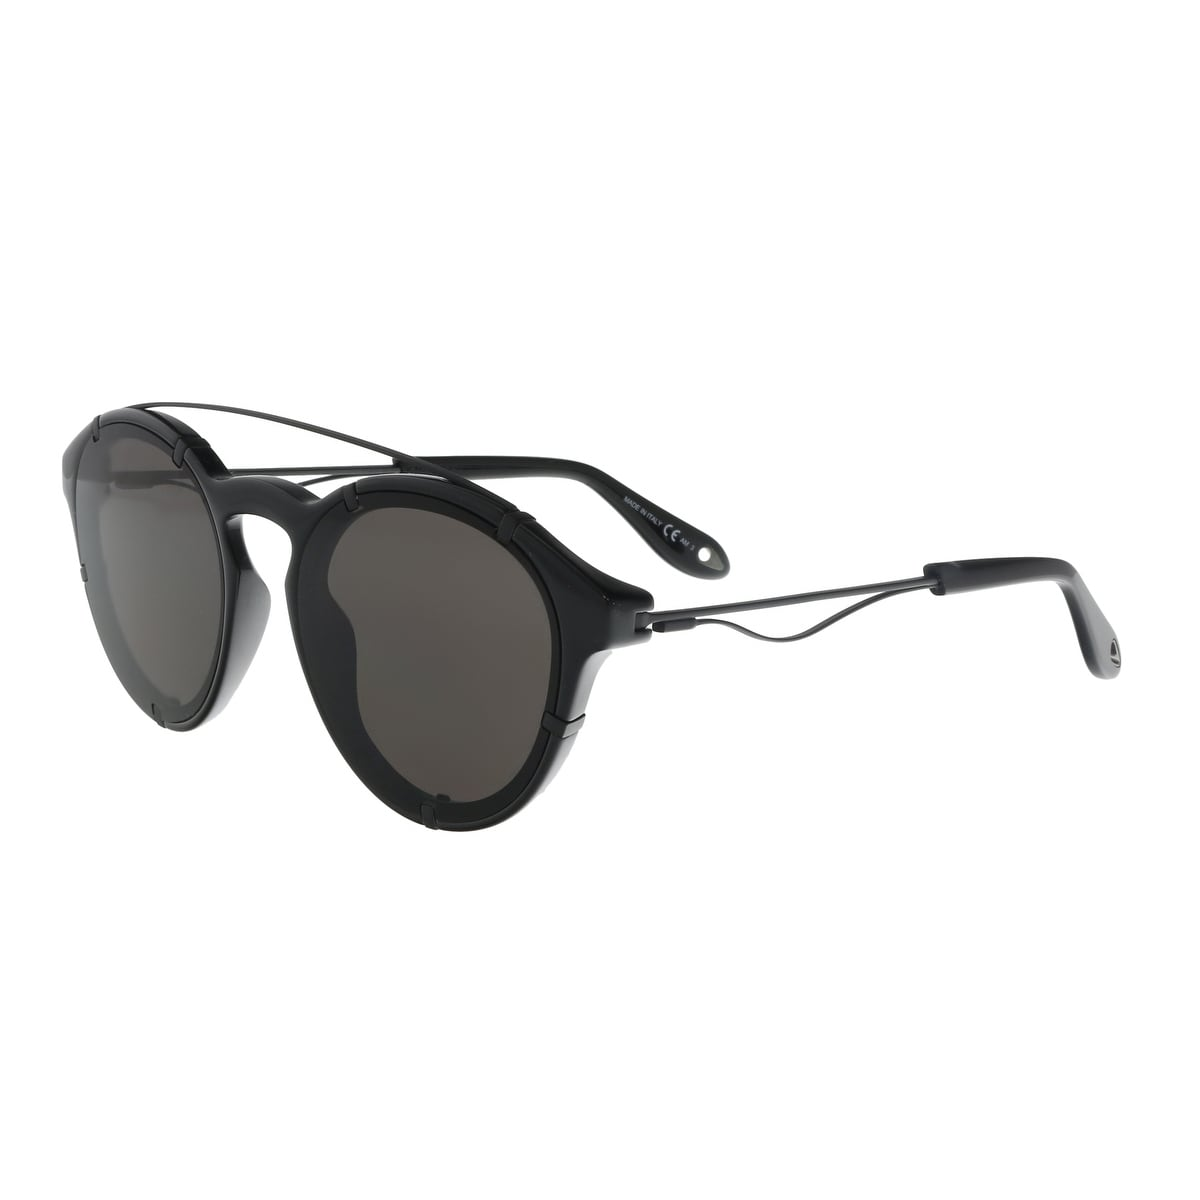 a12d3258253 Shop Givenchy GV 7088 S 807 Black Round Sunglasses - 54-19-150 - Free  Shipping Today - Overstock - 21642465